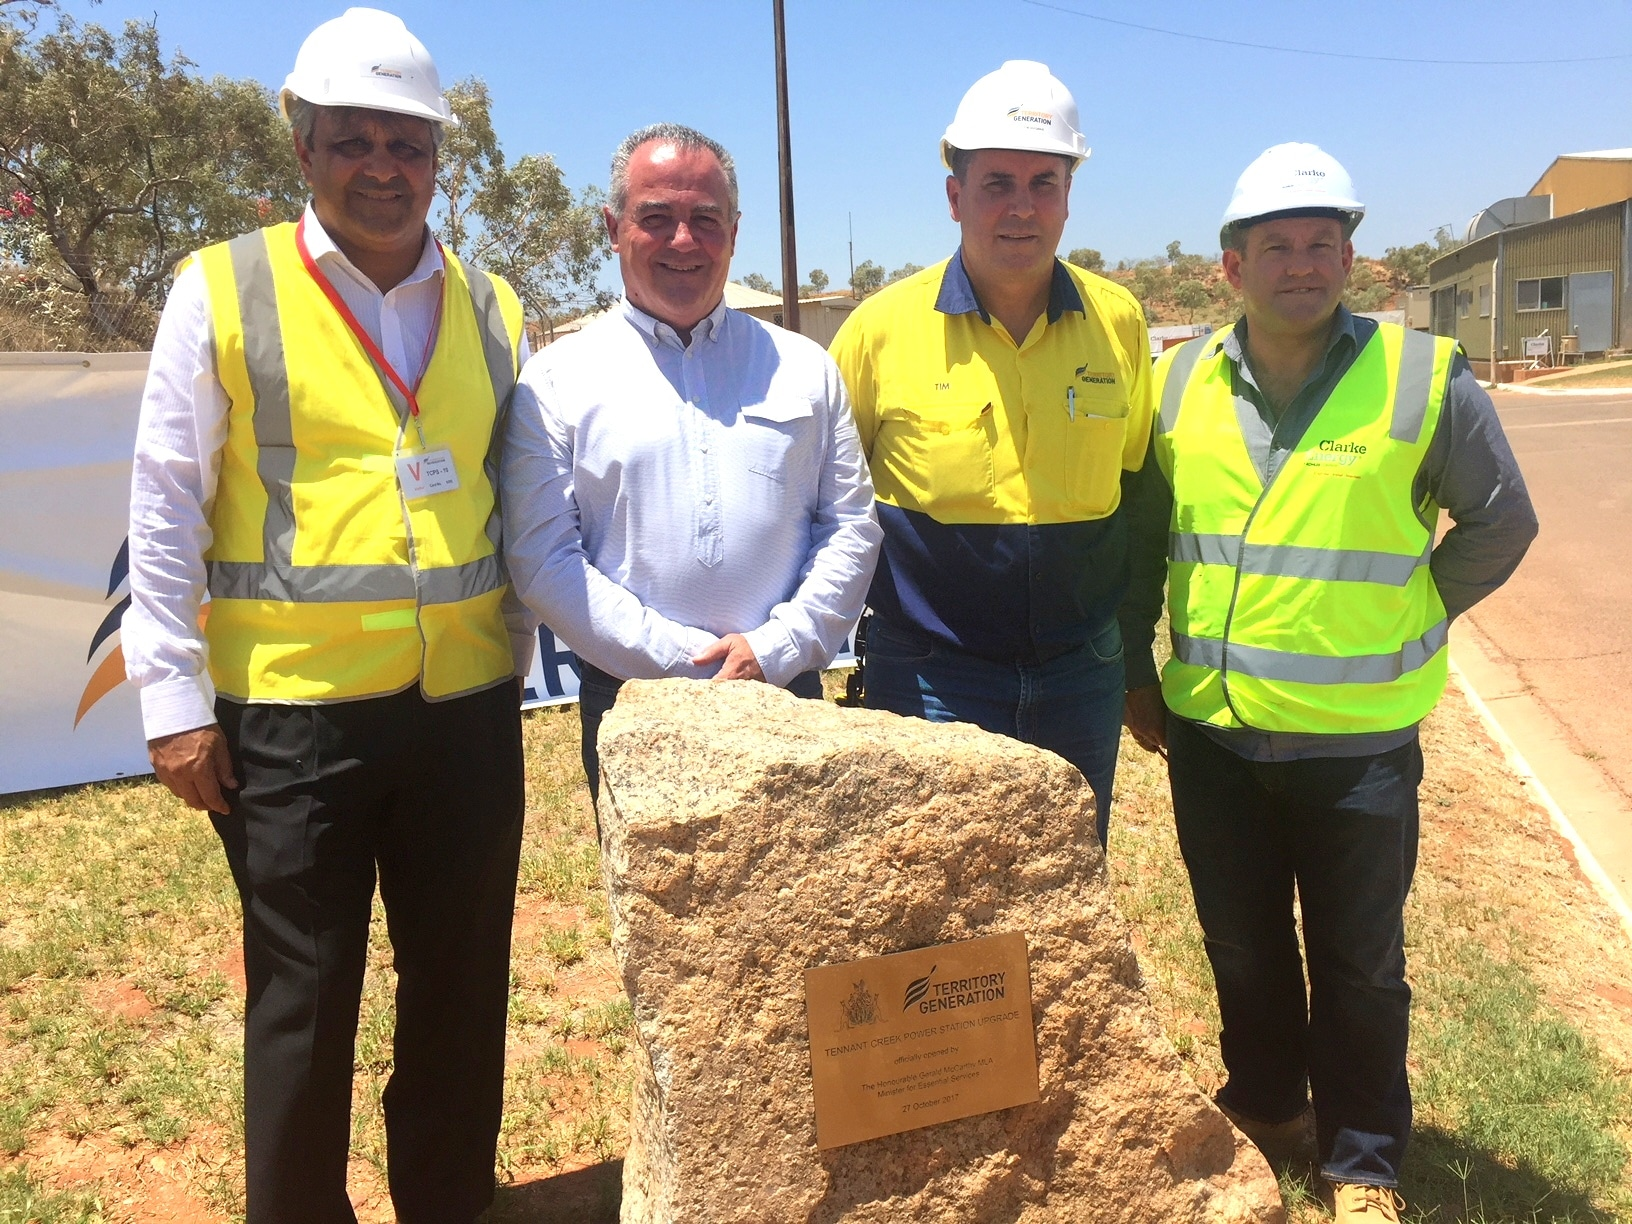 A photograph of (l-r) David de Silva, Chairman, Territory Generation Board, Gerry McCarthy, Minister for Essential Services, Tim Duignan, Chief Executive Officer, Territory Generation, Greg Columbus, Managing Director of Clarke Energy in Australia.